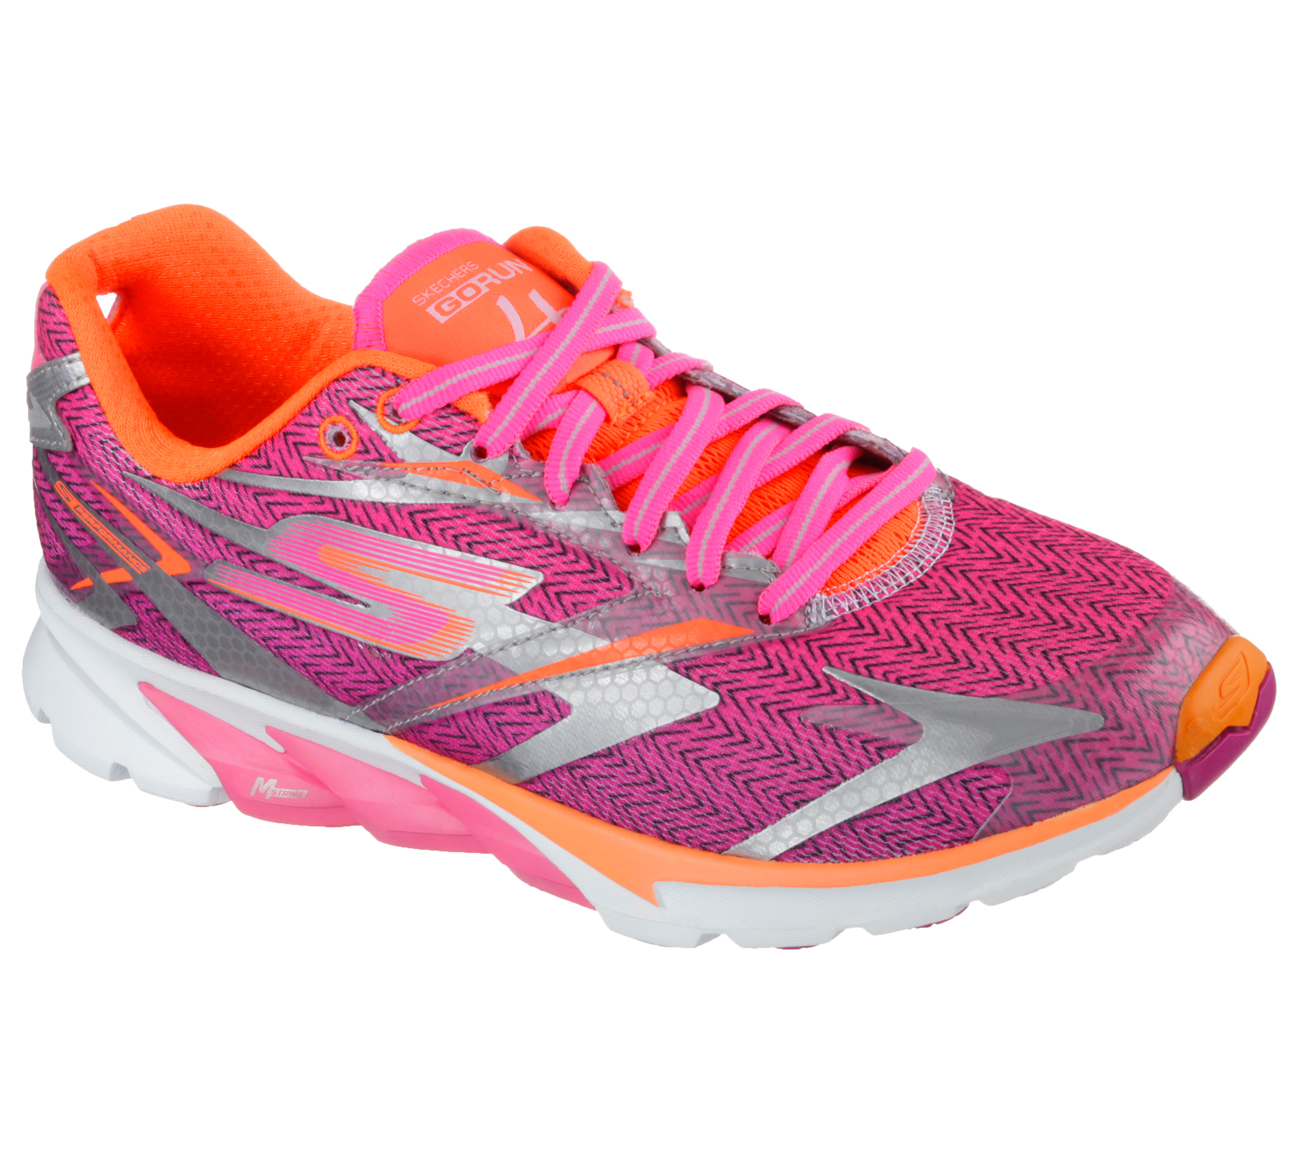 Where To Buy Skechers Shoes In Sydney